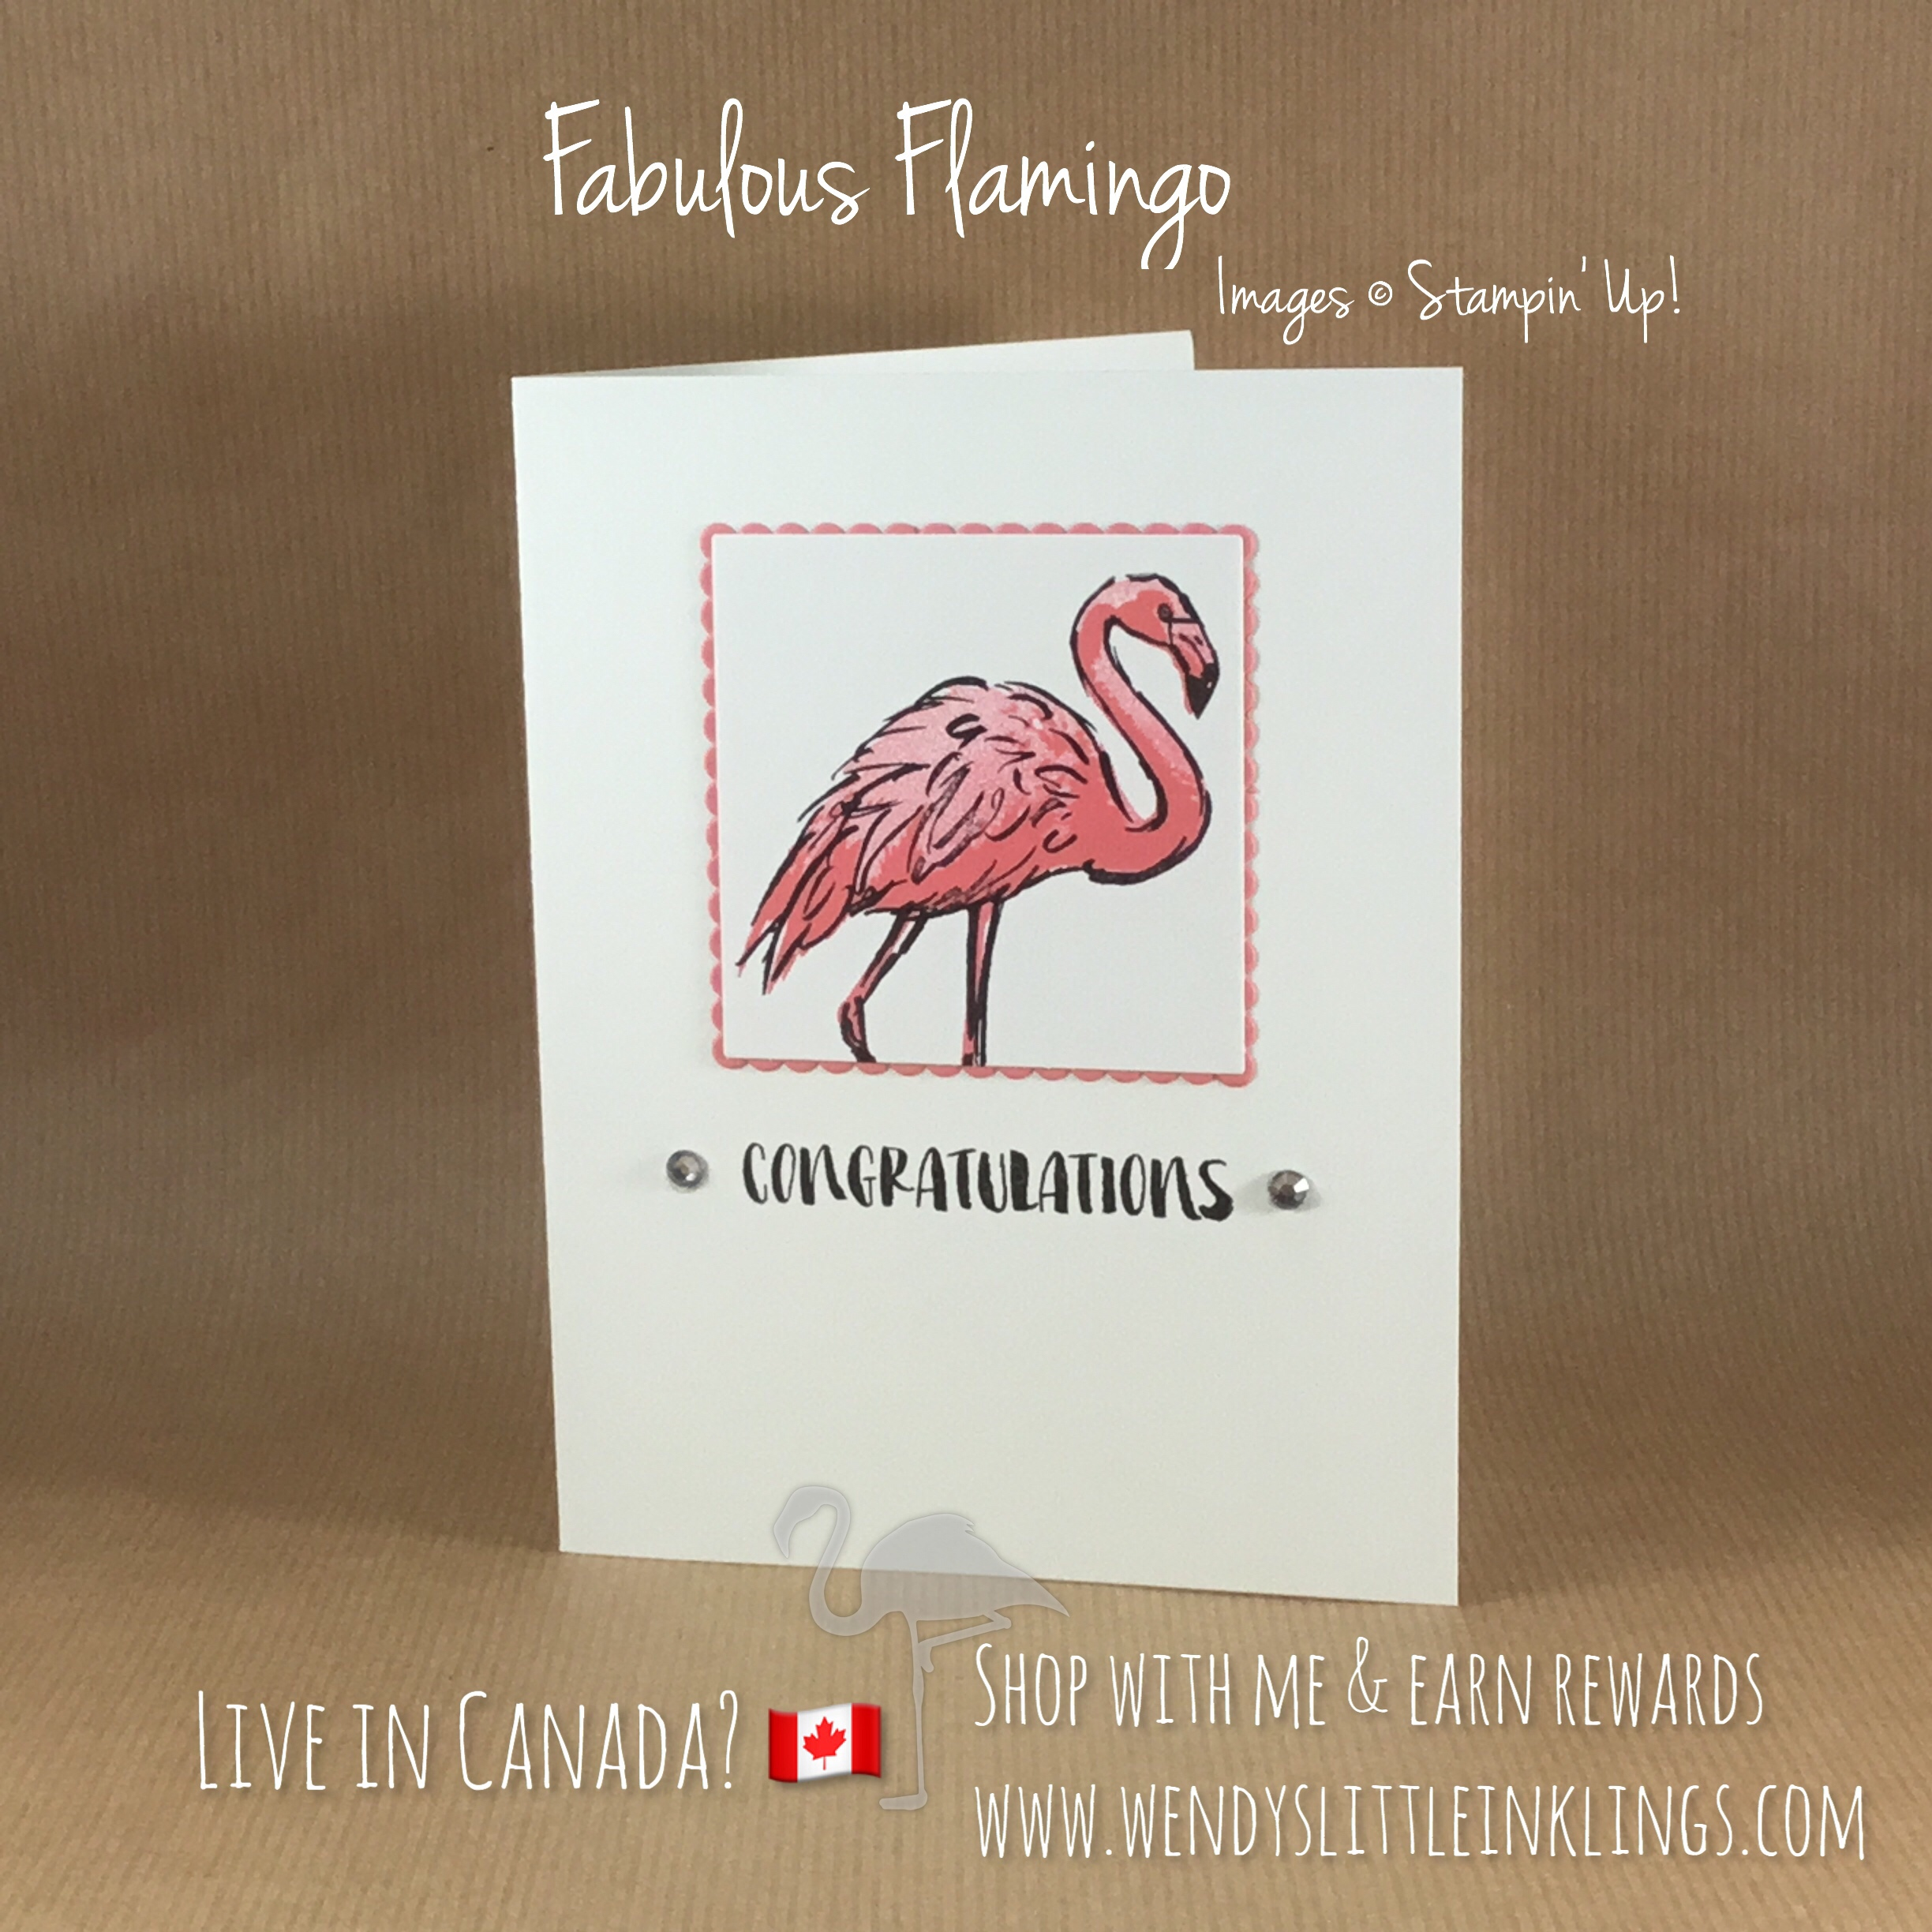 flamingo-friday-fabulous-flamingo-congratulations